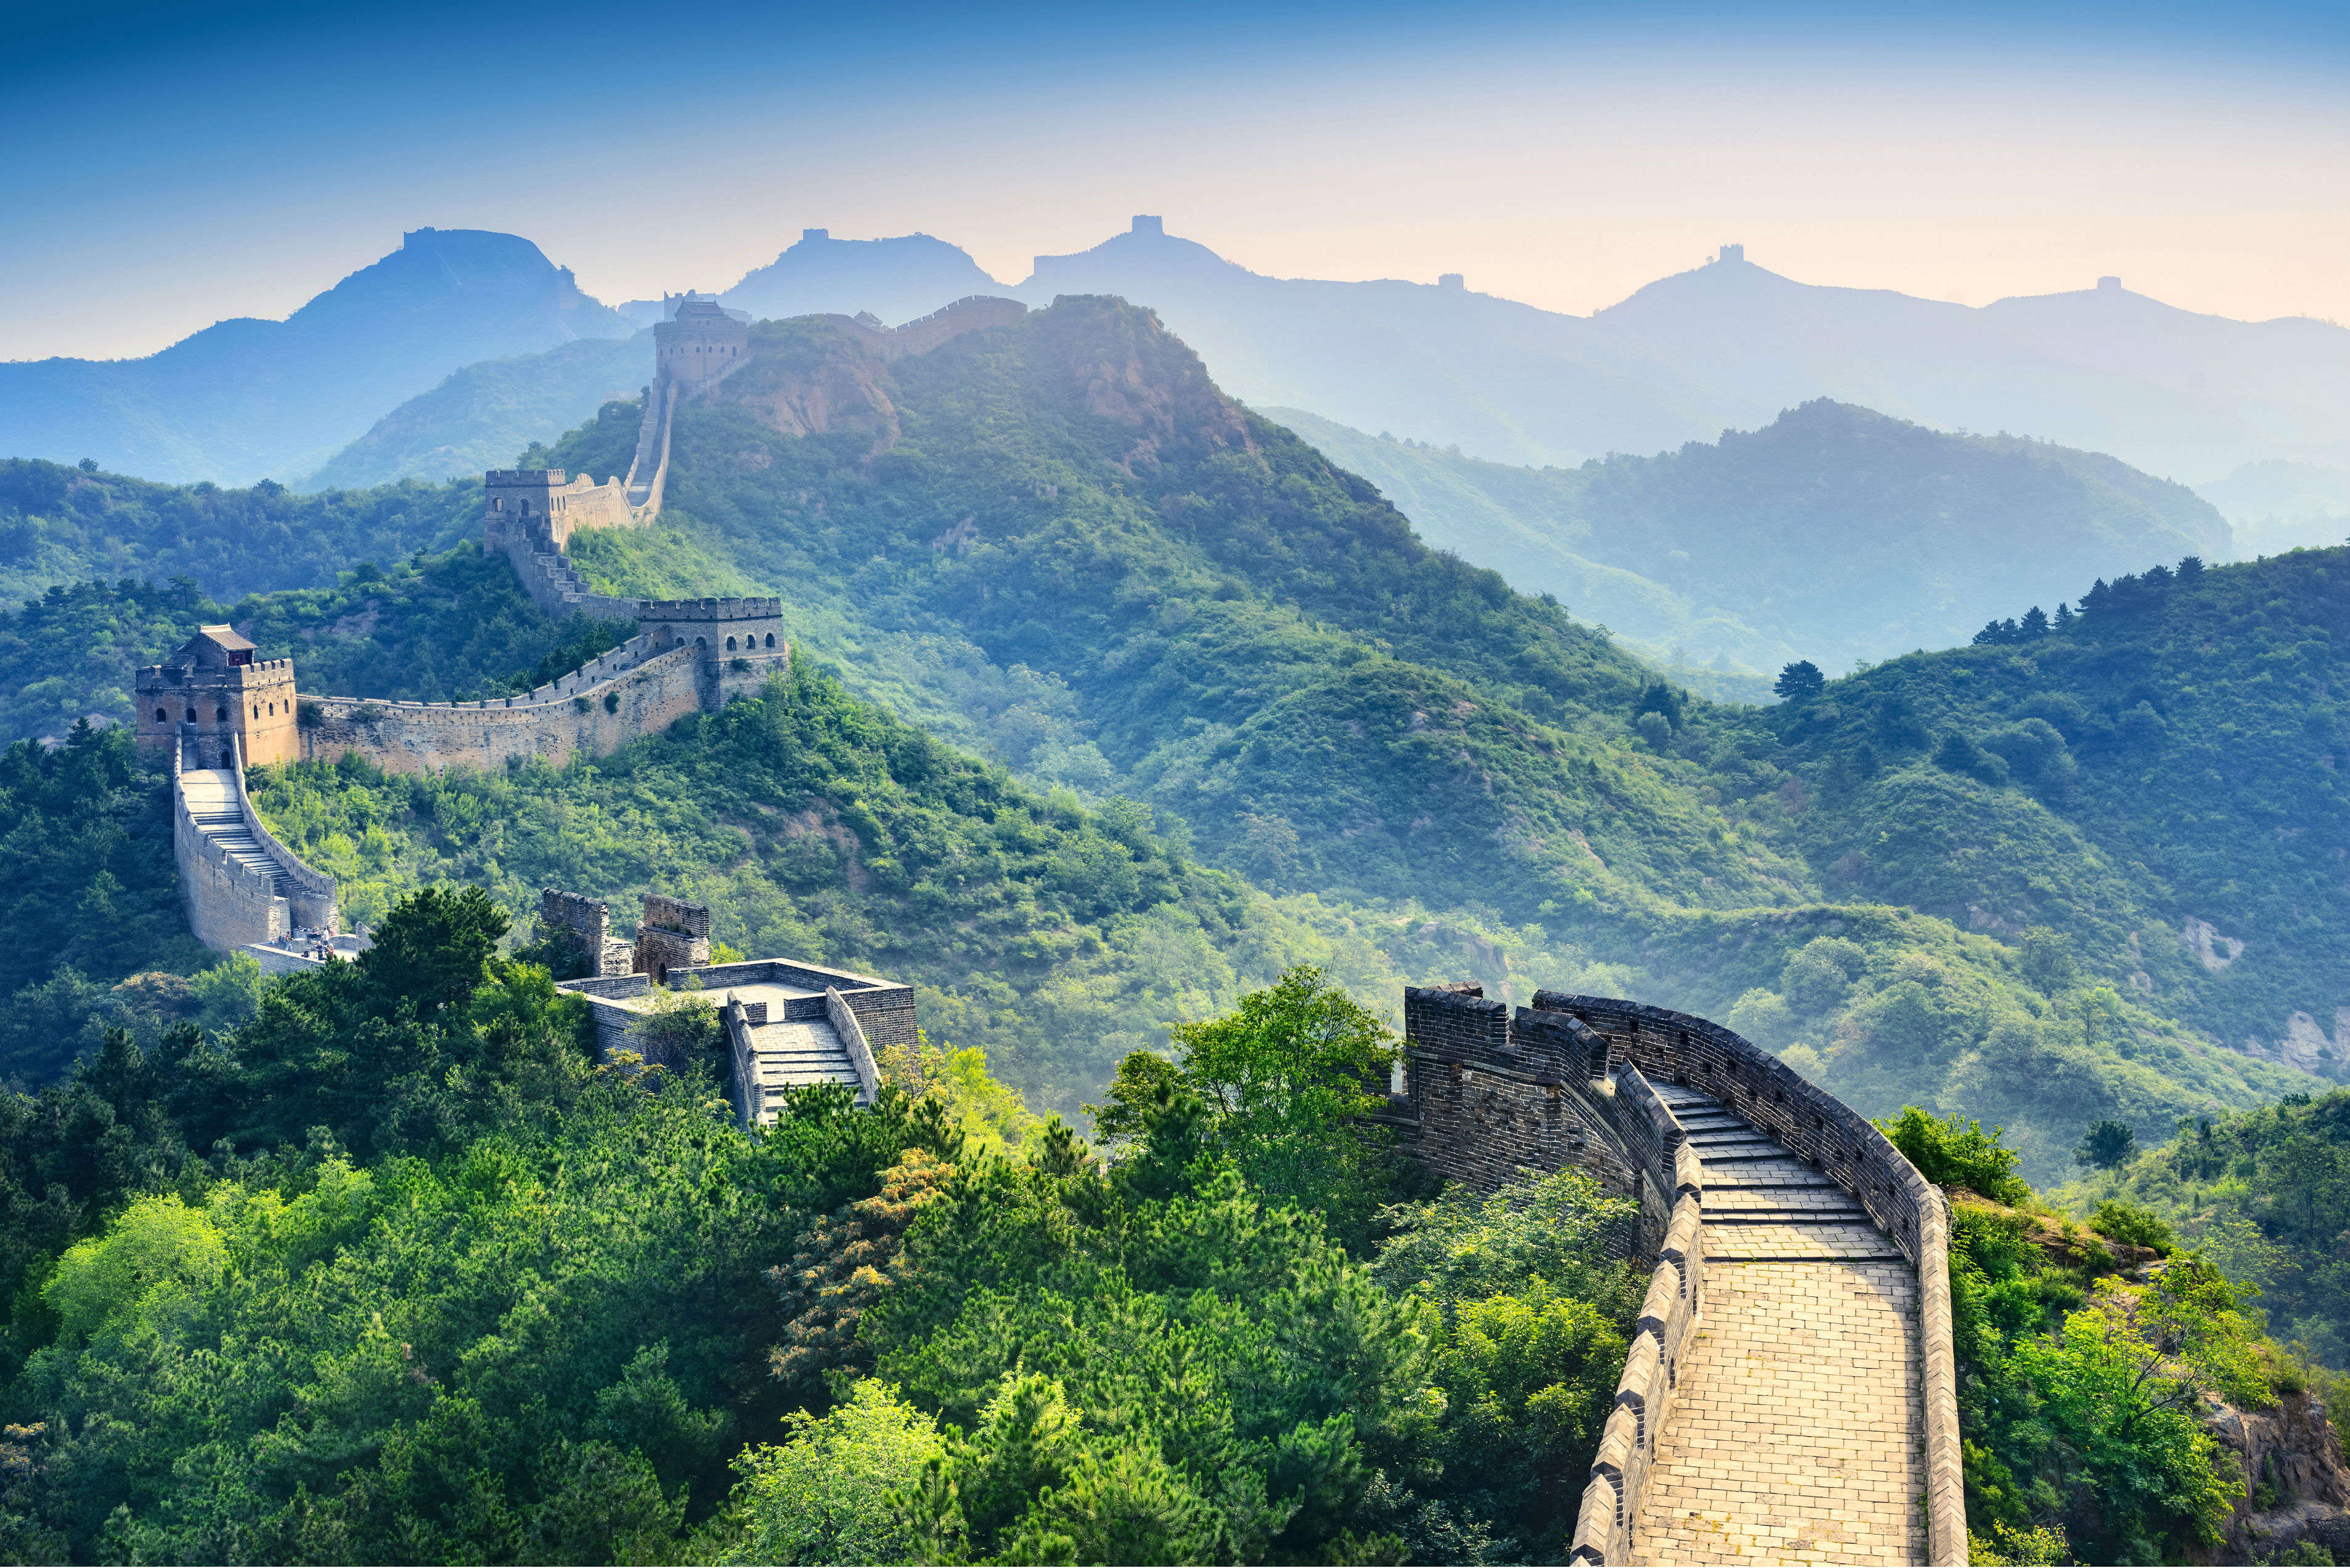 Great Wall of China favoured by Indians among the Seven Wonders of the World